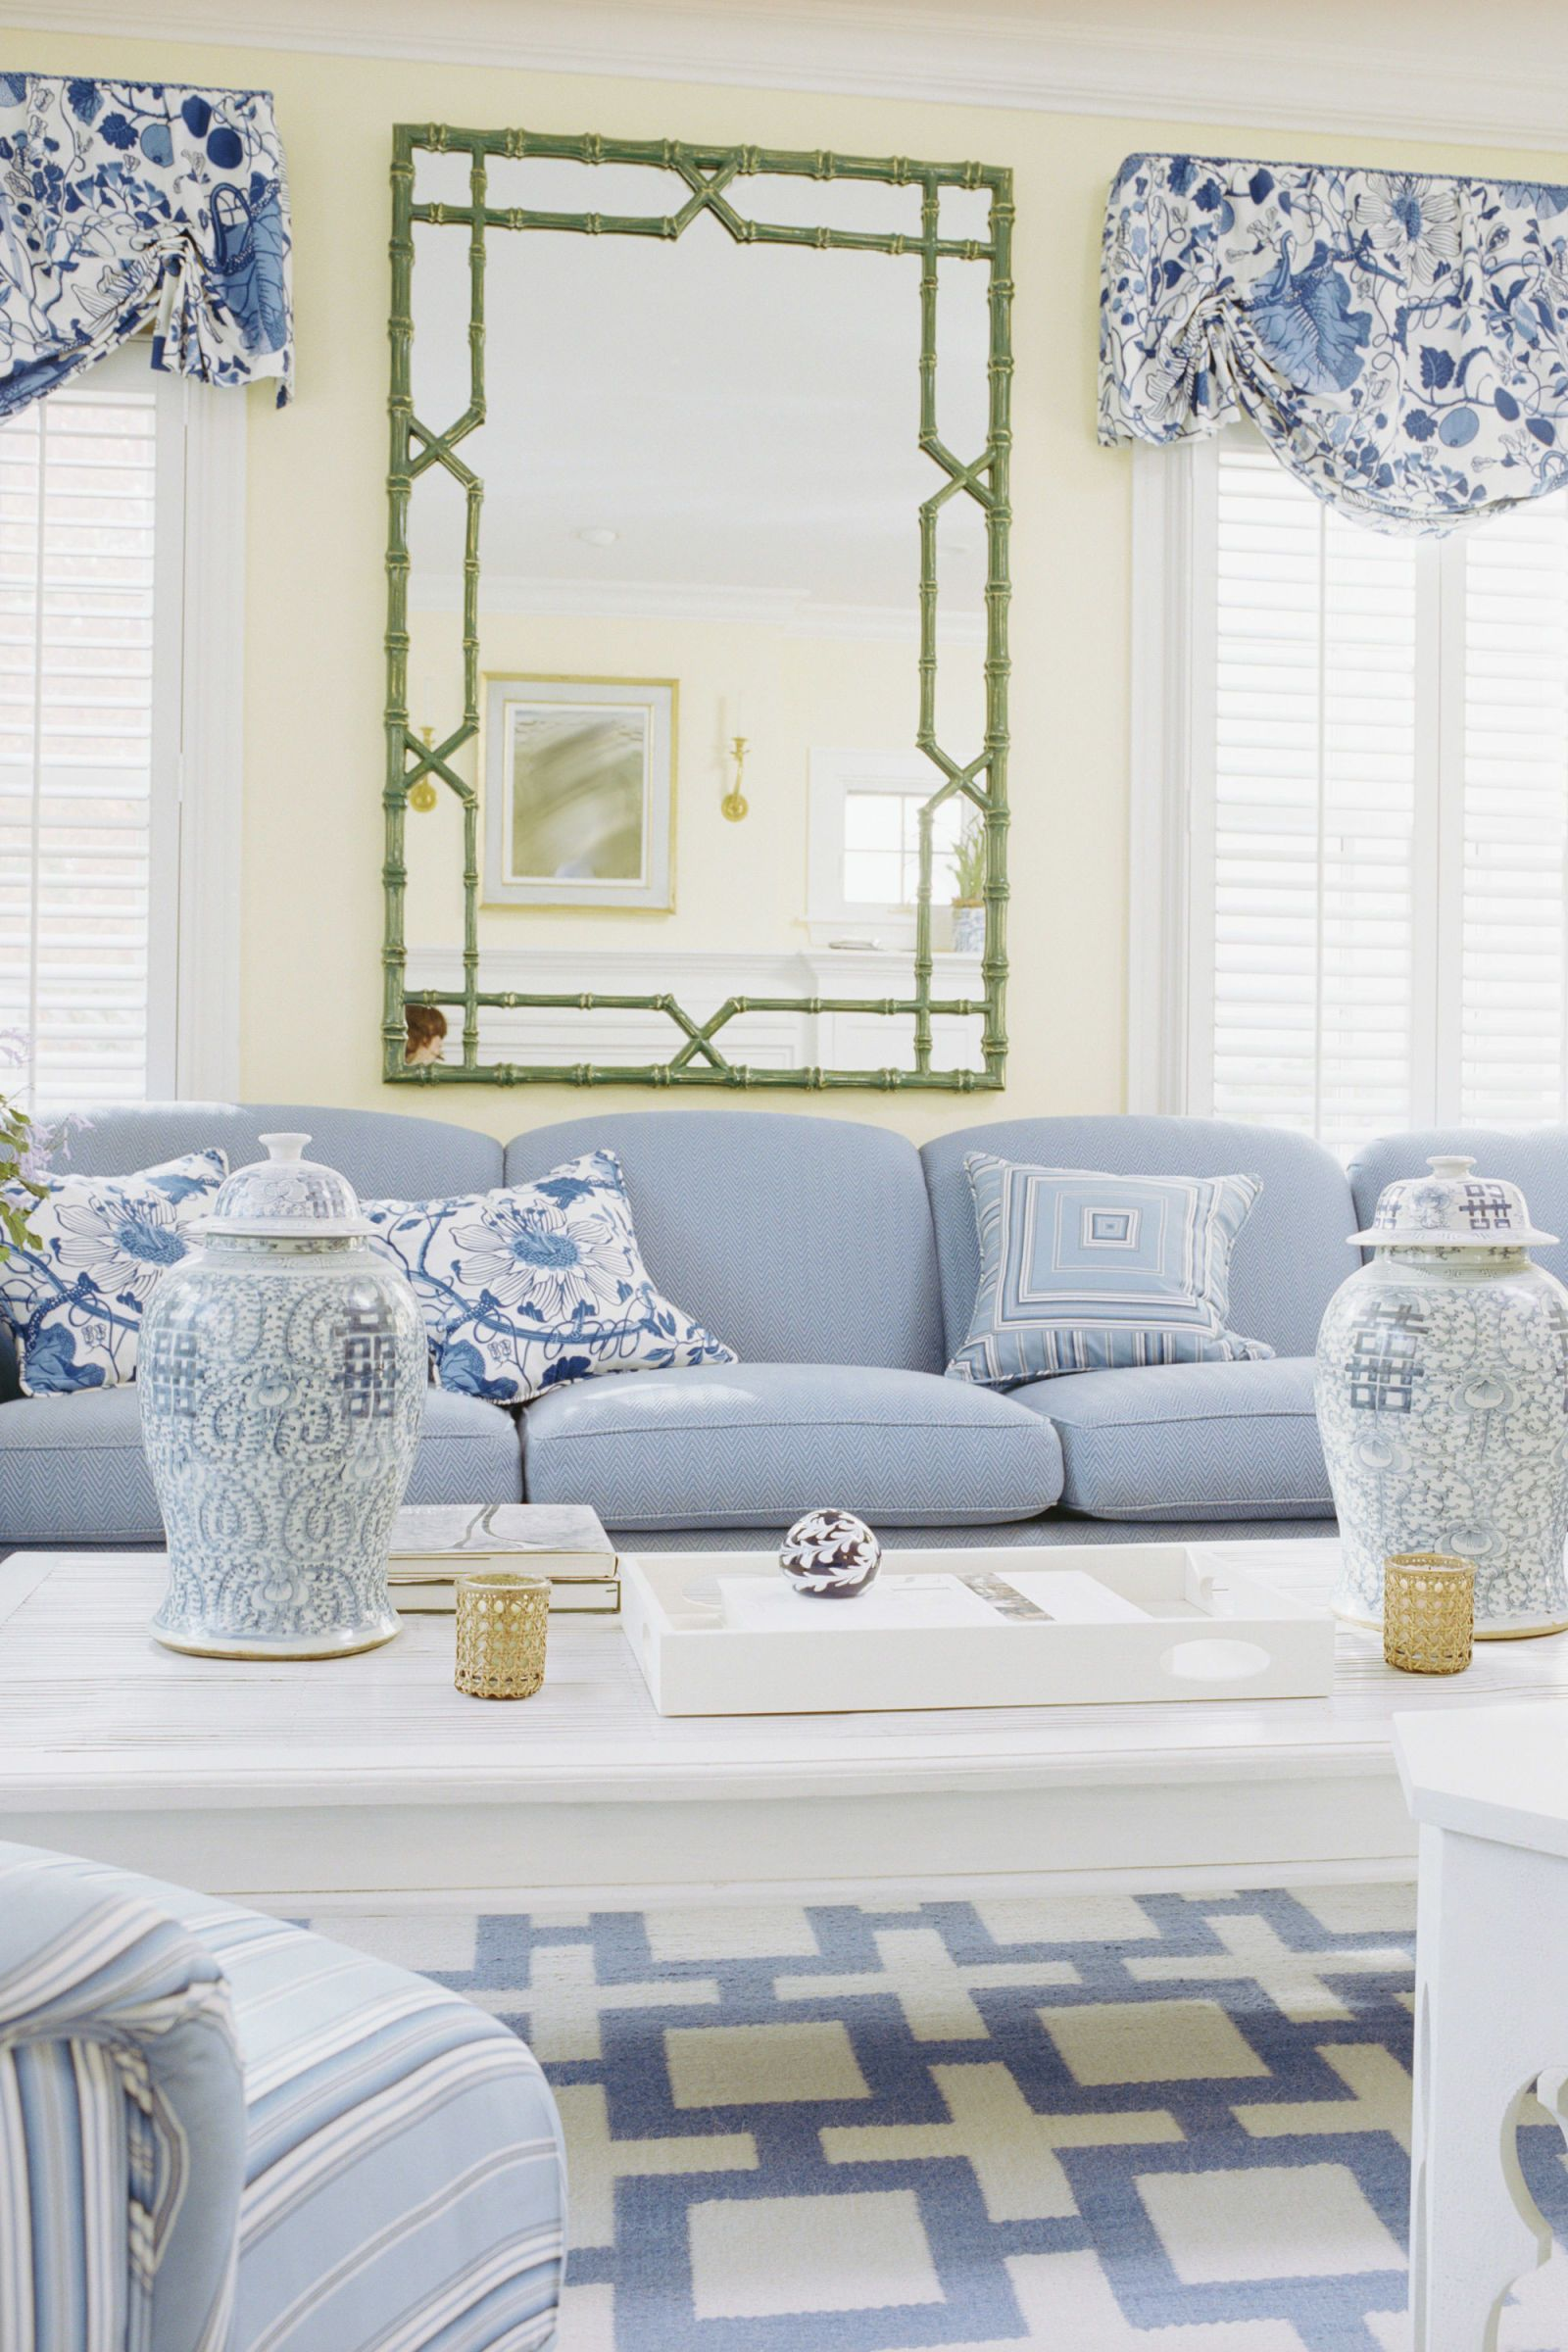 Best 23 Reasons Why Blue And White Is The Most Classic Color 400 x 300